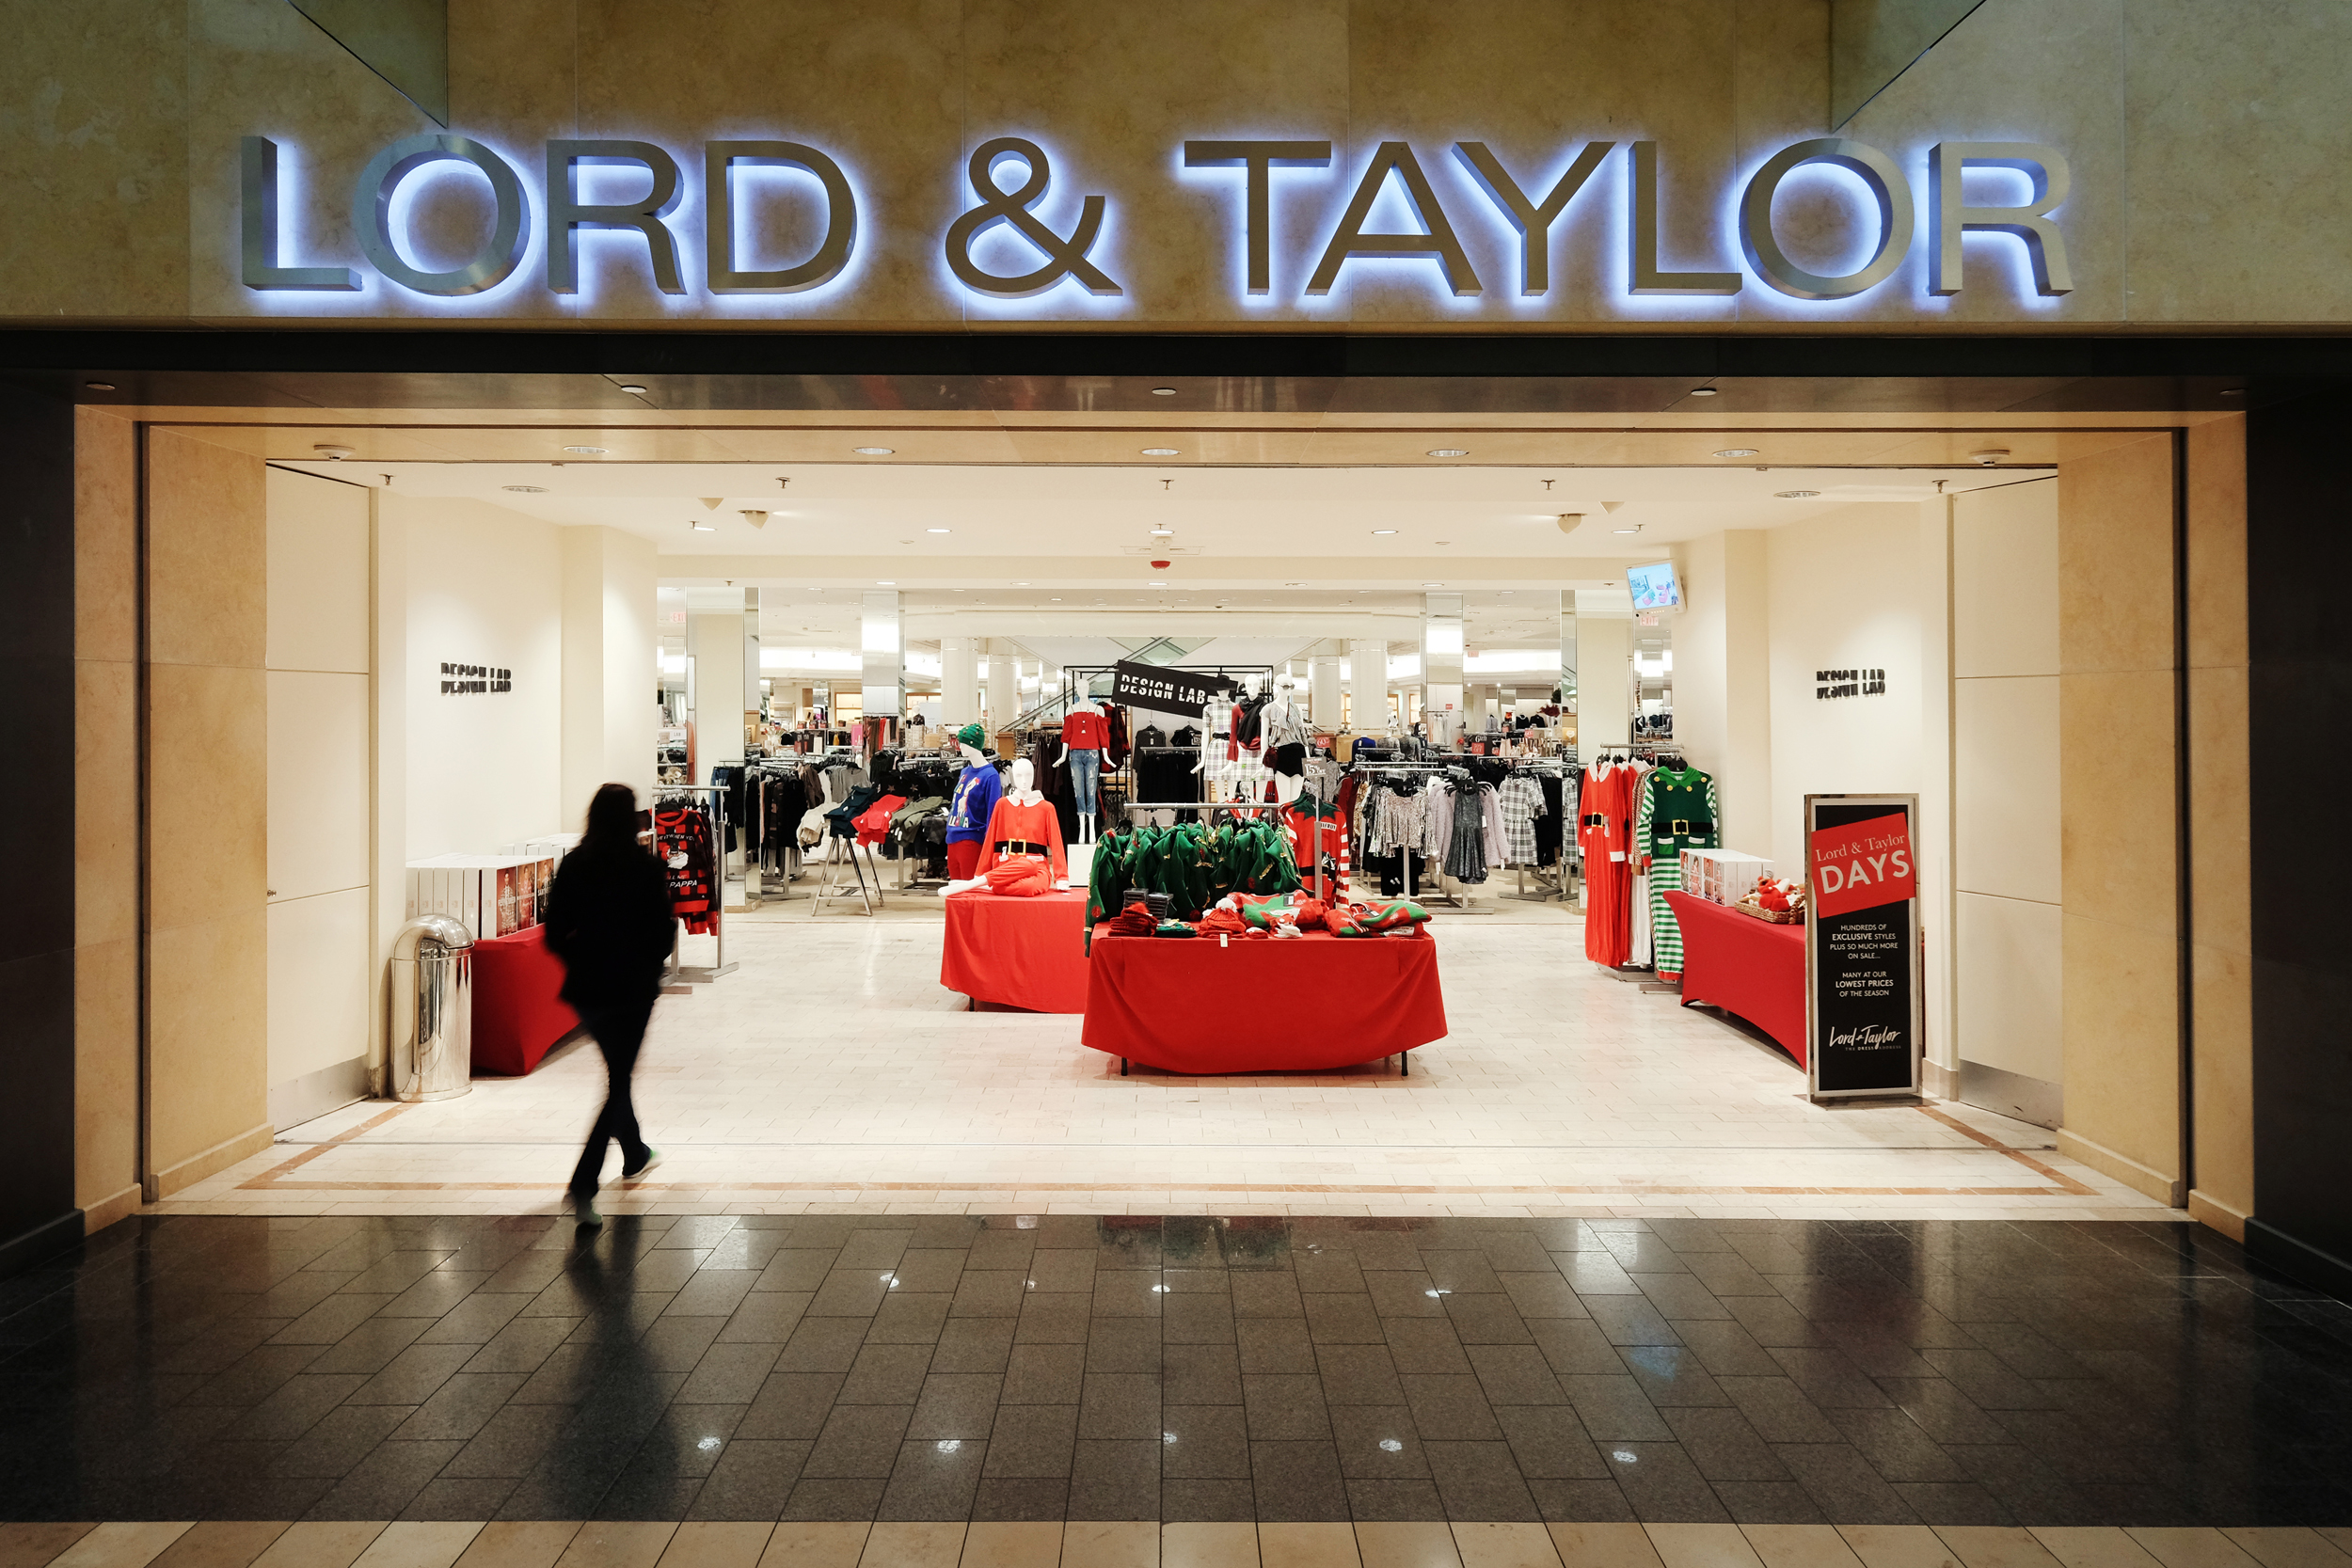 Can shopping malls survive long-term? Lord & Taylor files for bankruptcy protection, along with others